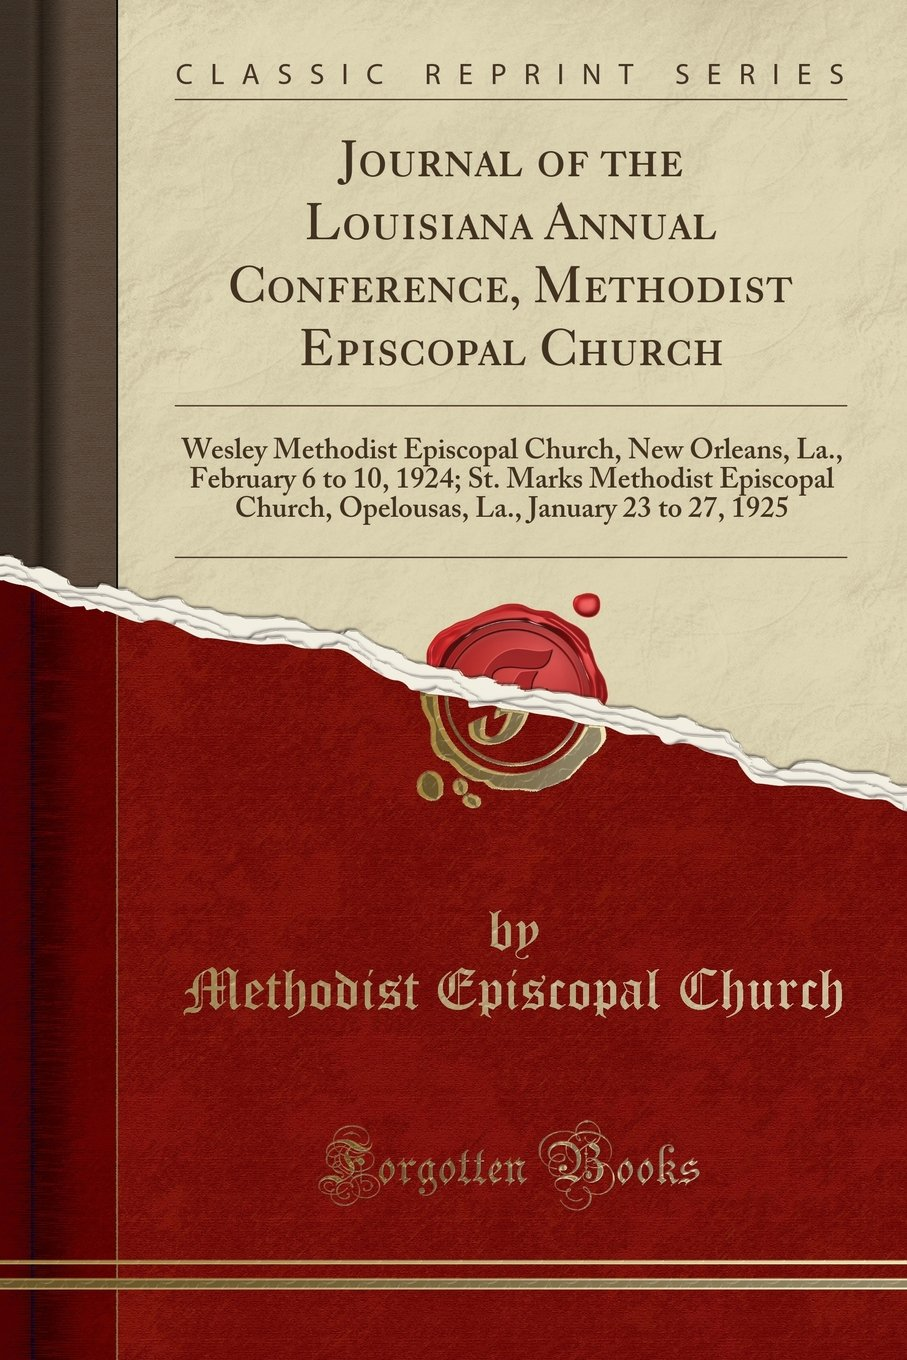 Read Online Journal of the Louisiana Annual Conference, Methodist Episcopal Church: Wesley Methodist Episcopal Church, New Orleans, La., February 6 to 10, 1924; ... La., January 23 to 27, 1925 (Classic Reprint) PDF